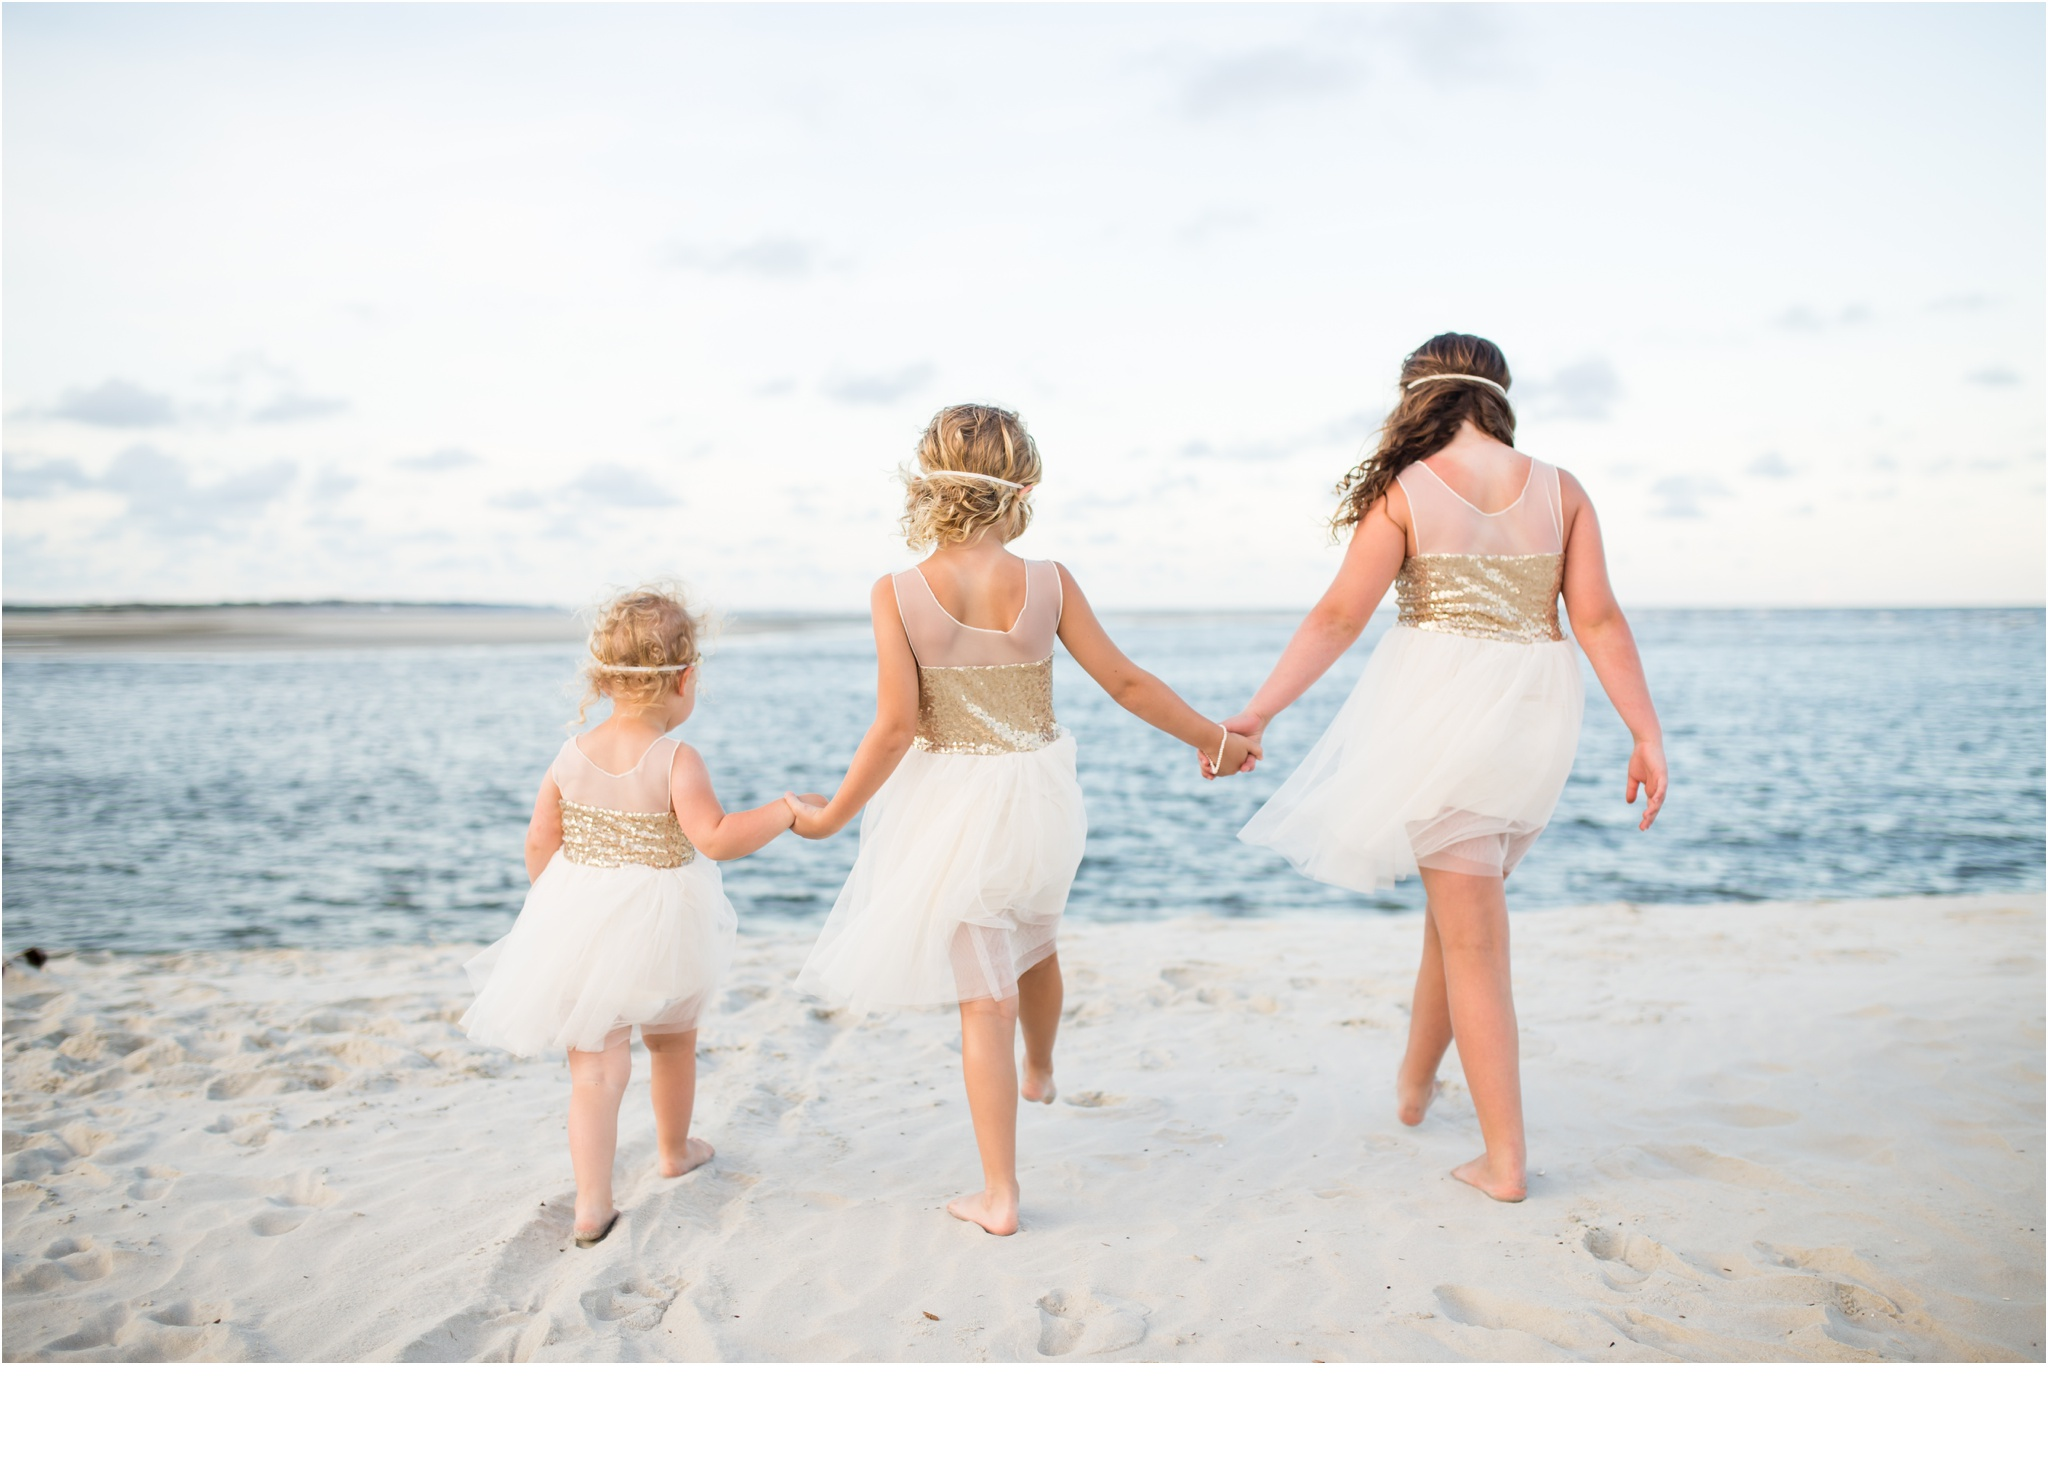 Rainey_Gregg_Photography_St._Simons_Island_Georgia_California_Wedding_Portrait_Photography_1424.jpg